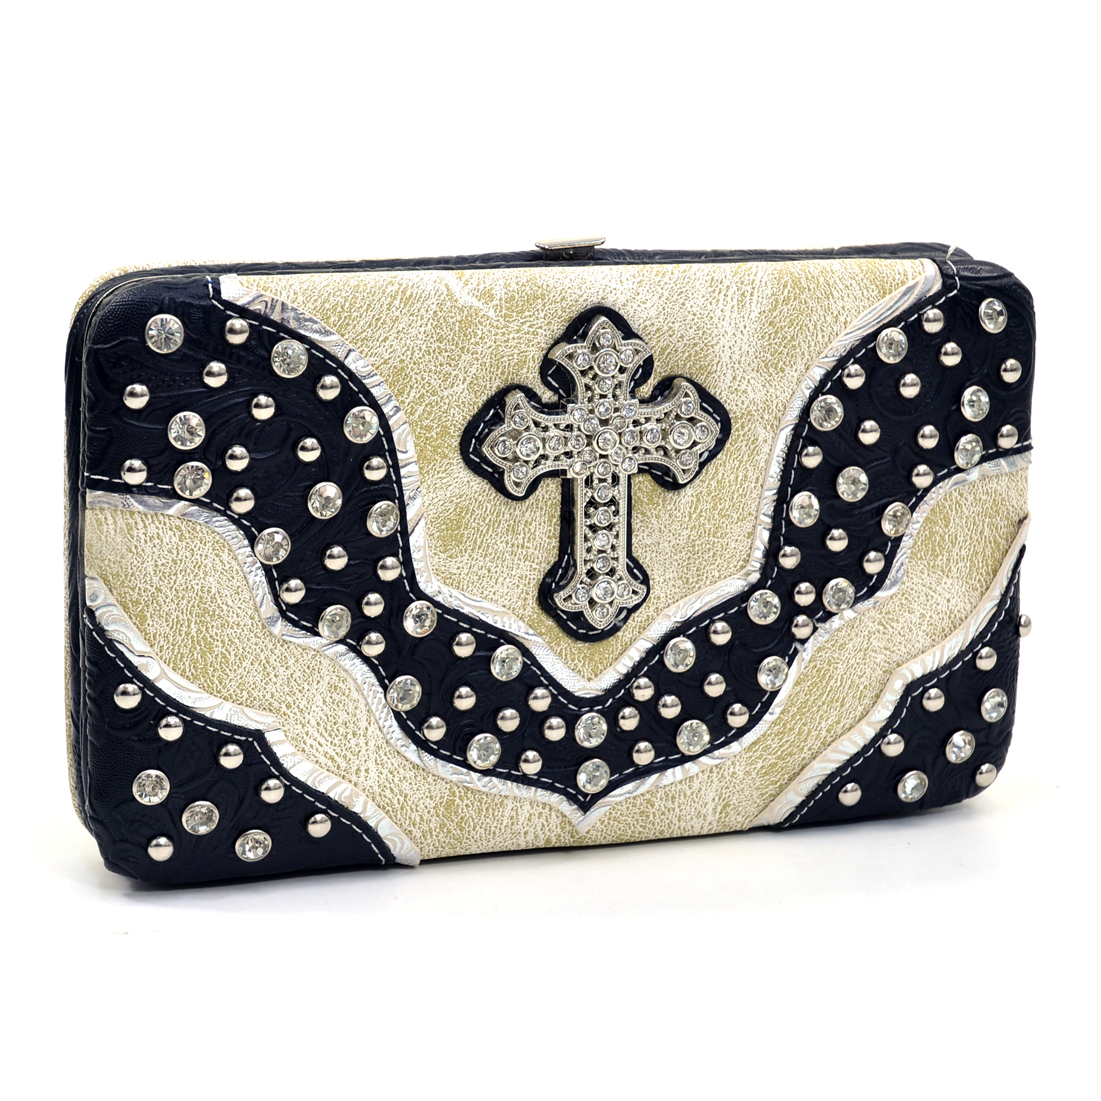 Rhinestone Studded Western Frame Wallet With Cross Accent And Floral Trim